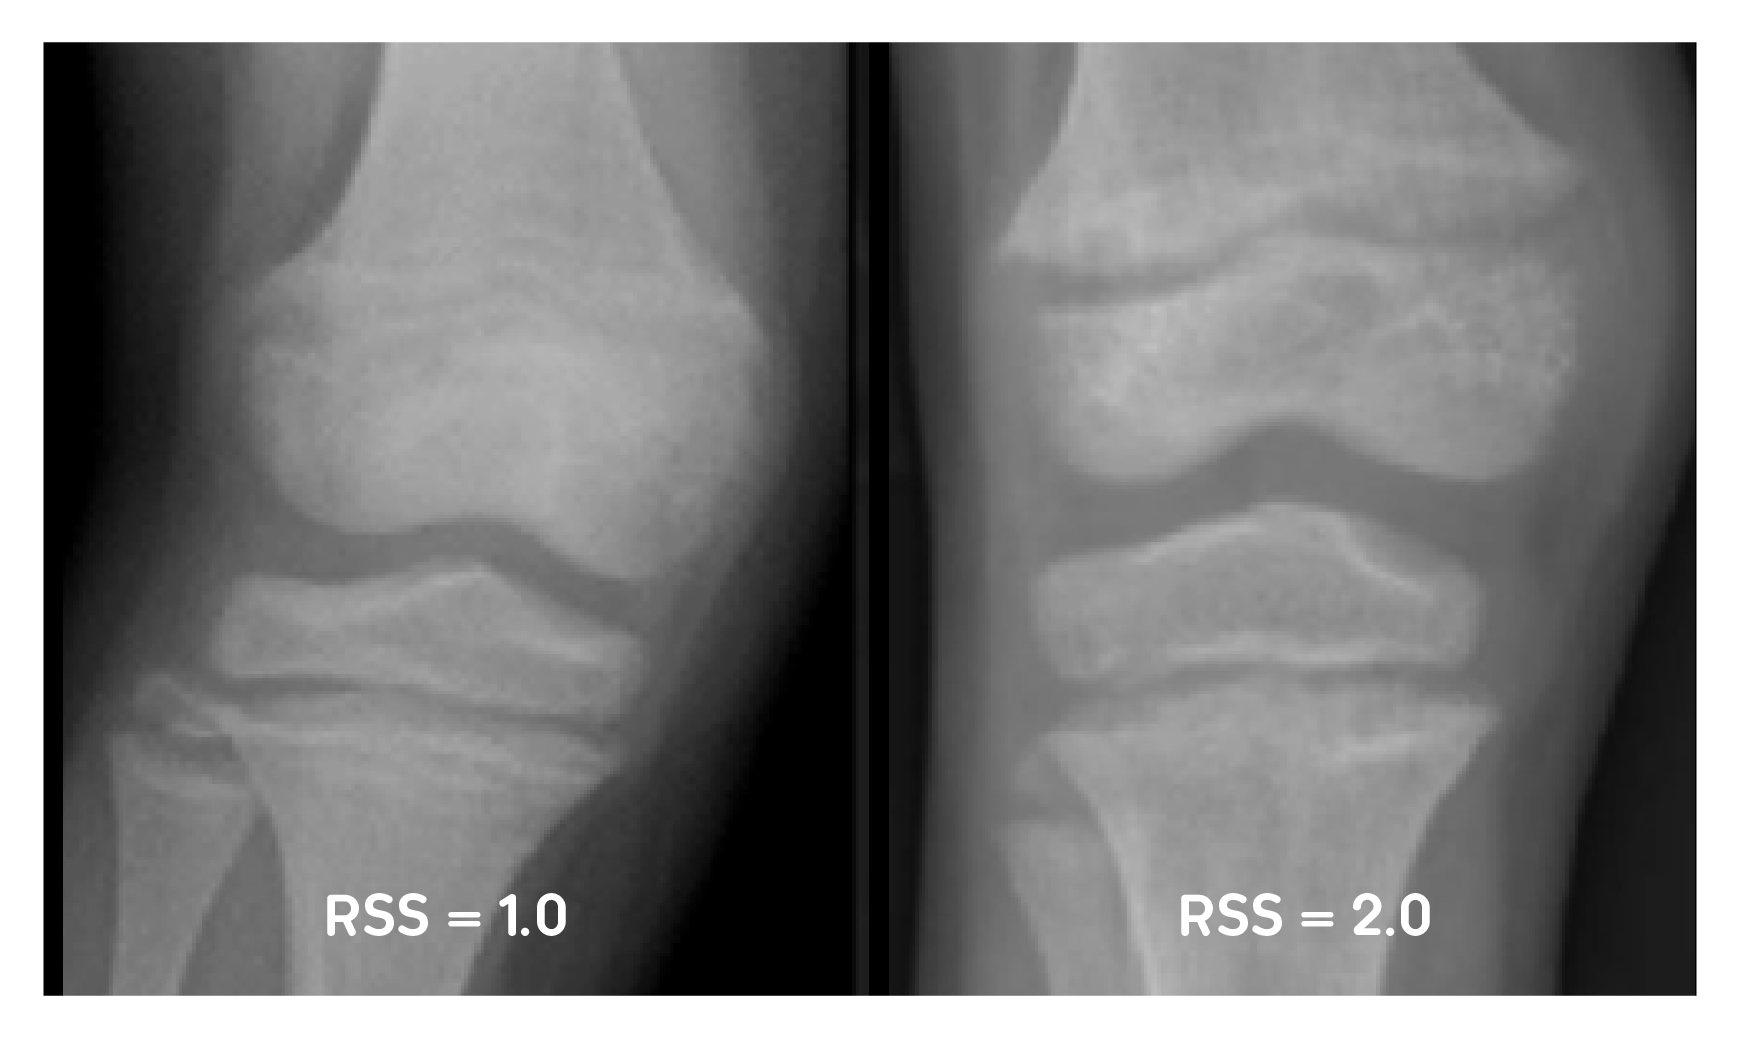 X-ray examples of RSS of 1 and RSS of 2